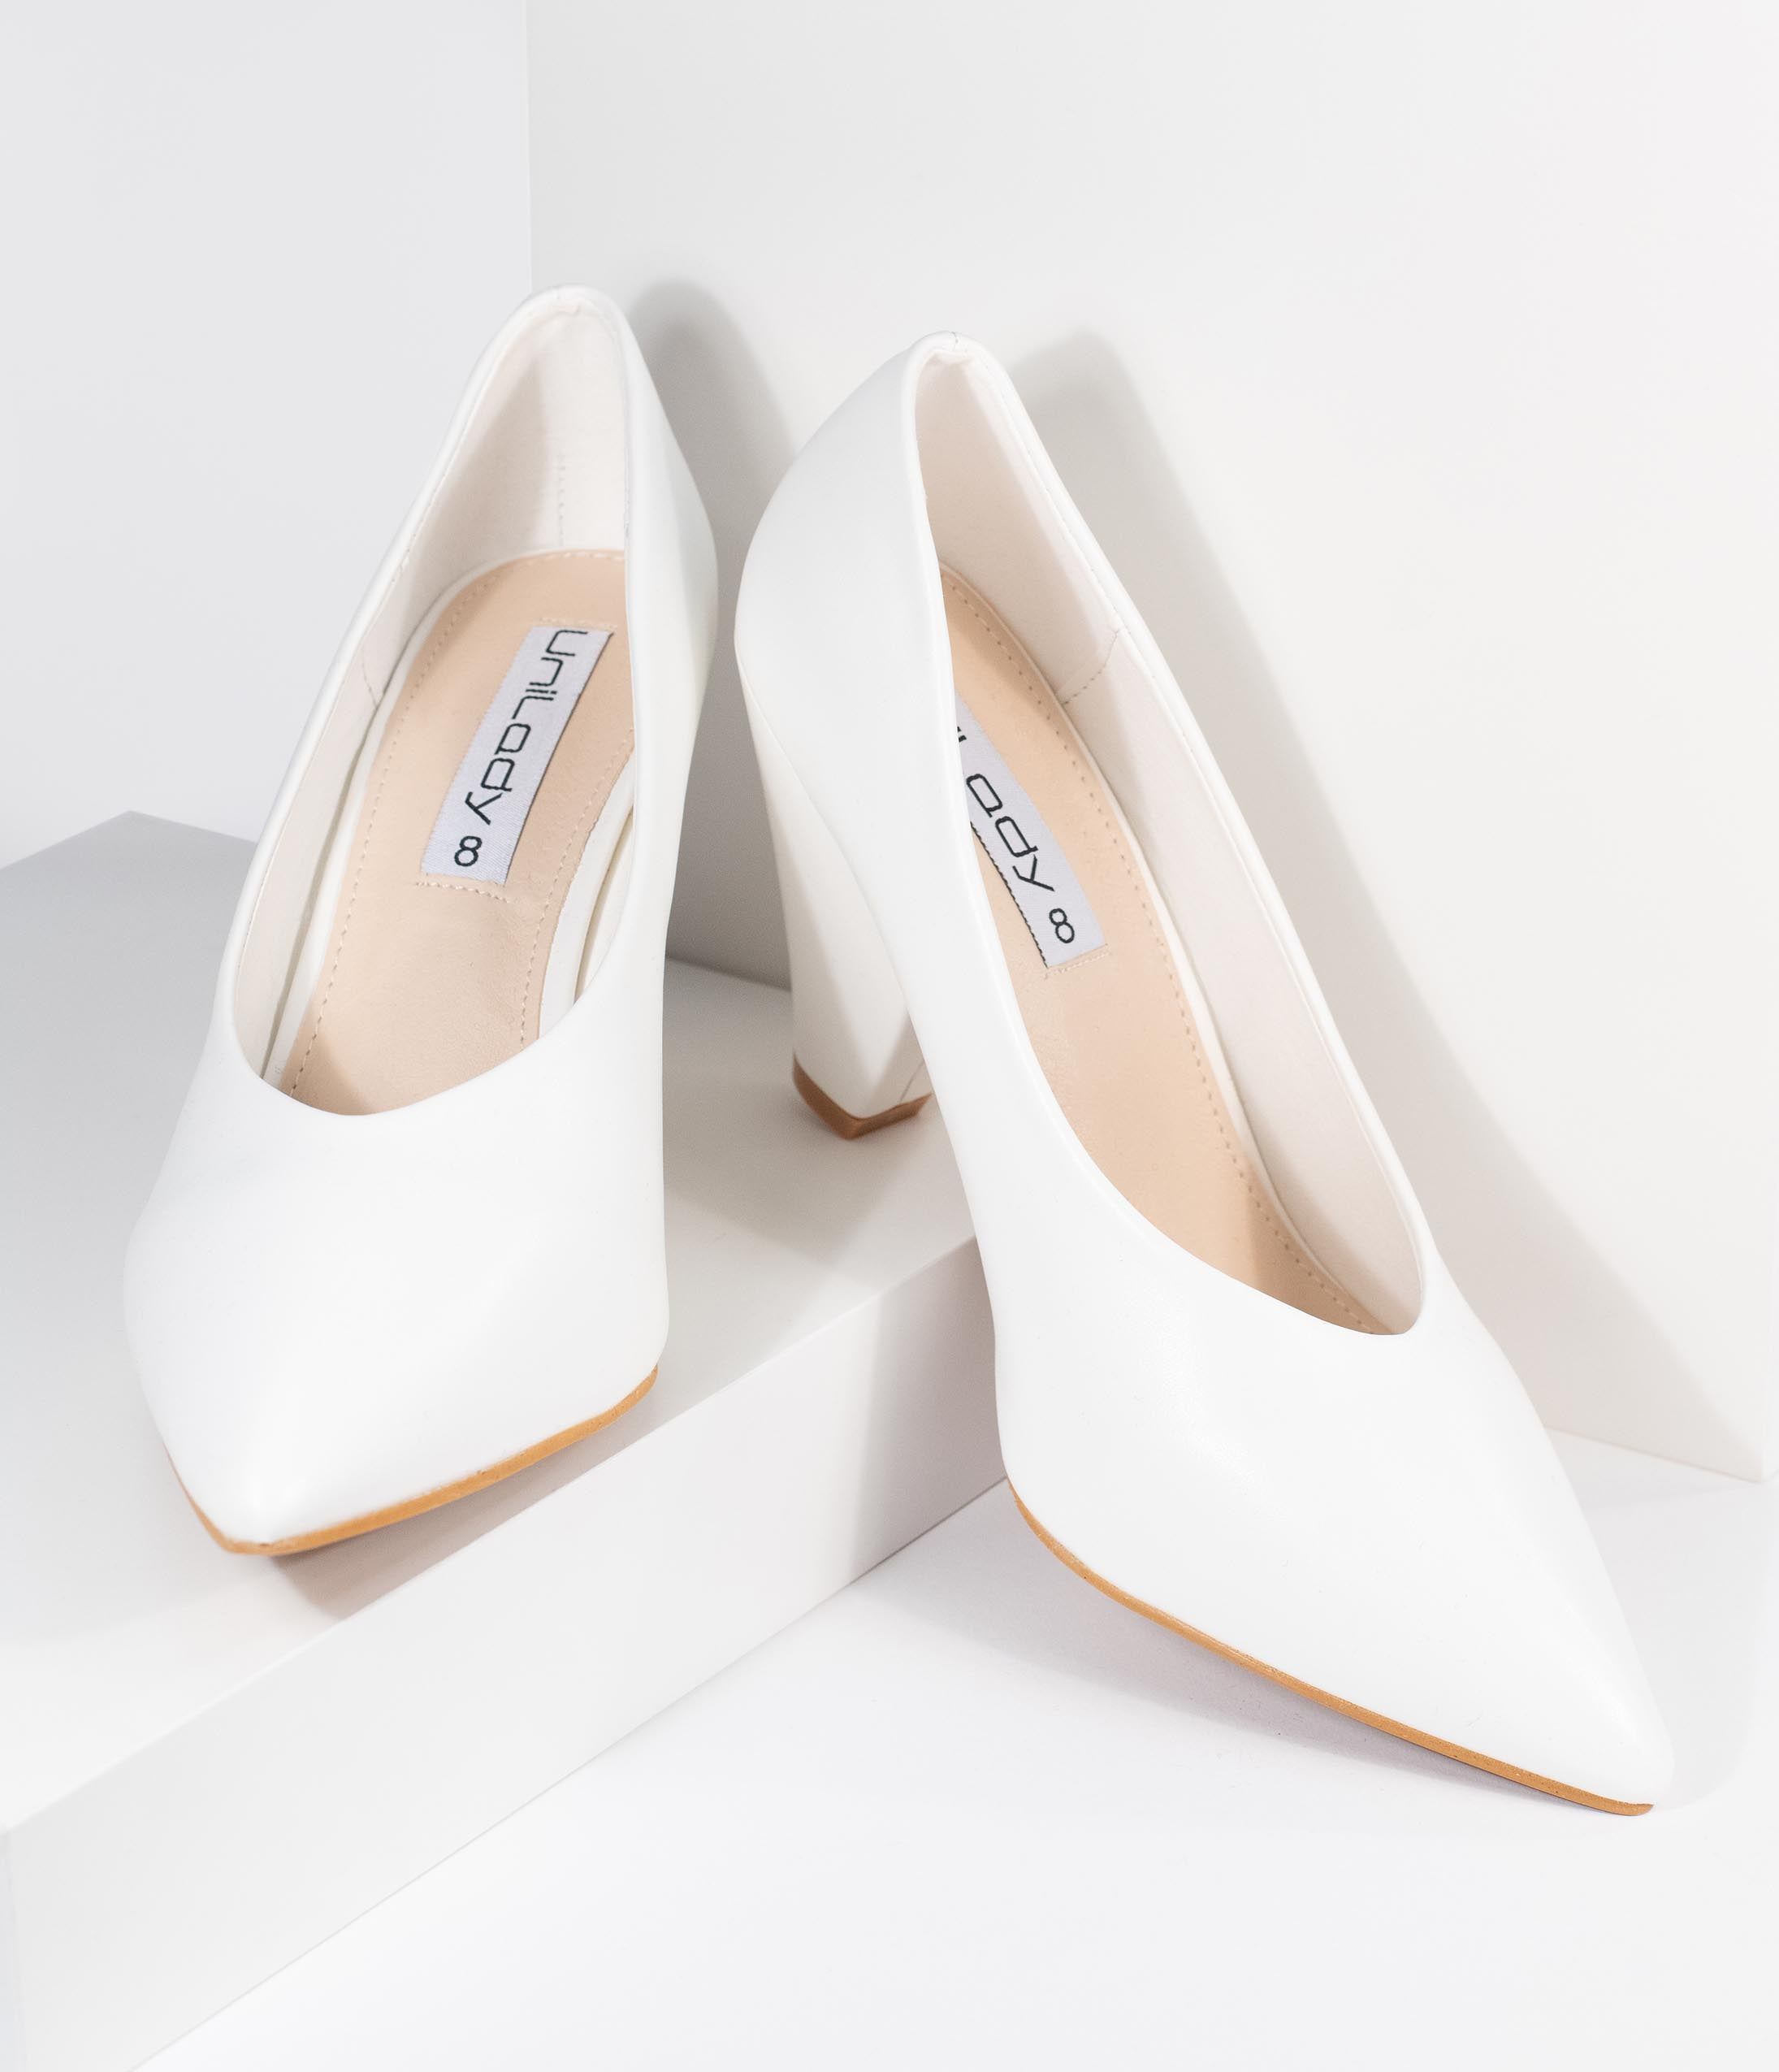 Vintage Style Shoes, Vintage Inspired Shoes White Leatherette Pointed Toe Cone Heel Pumps $36.00 AT vintagedancer.com